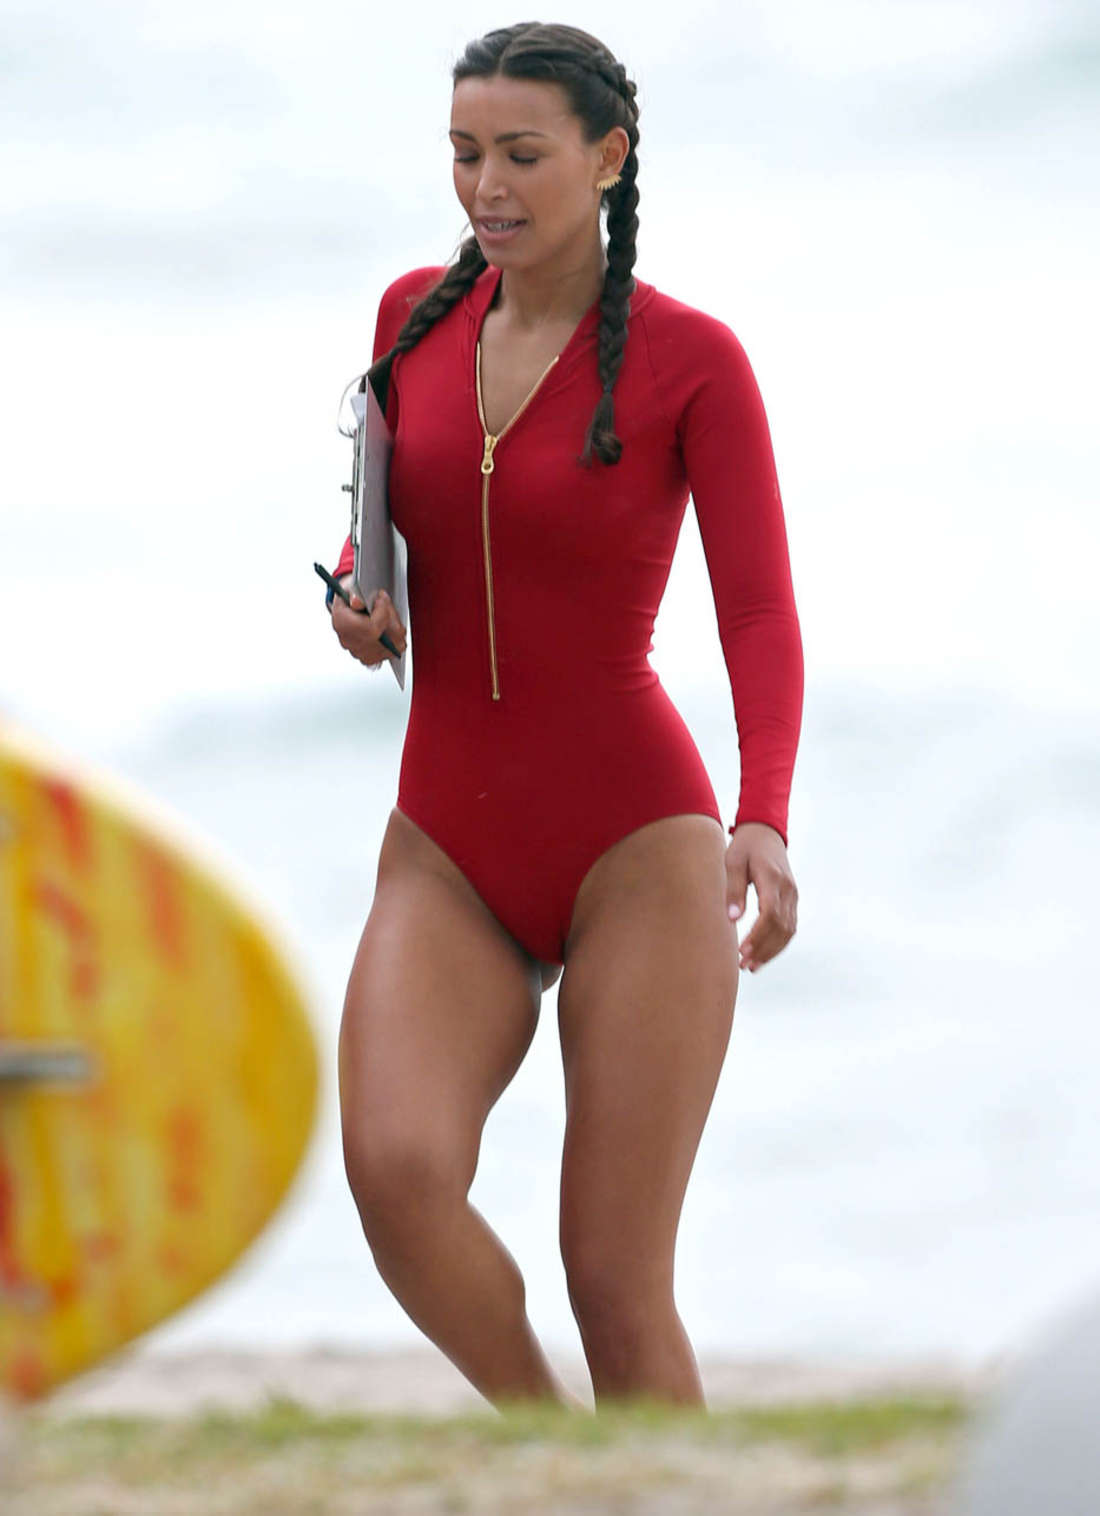 Ilfenesh Hadera on the set of Baywatch in Deerfield Beach